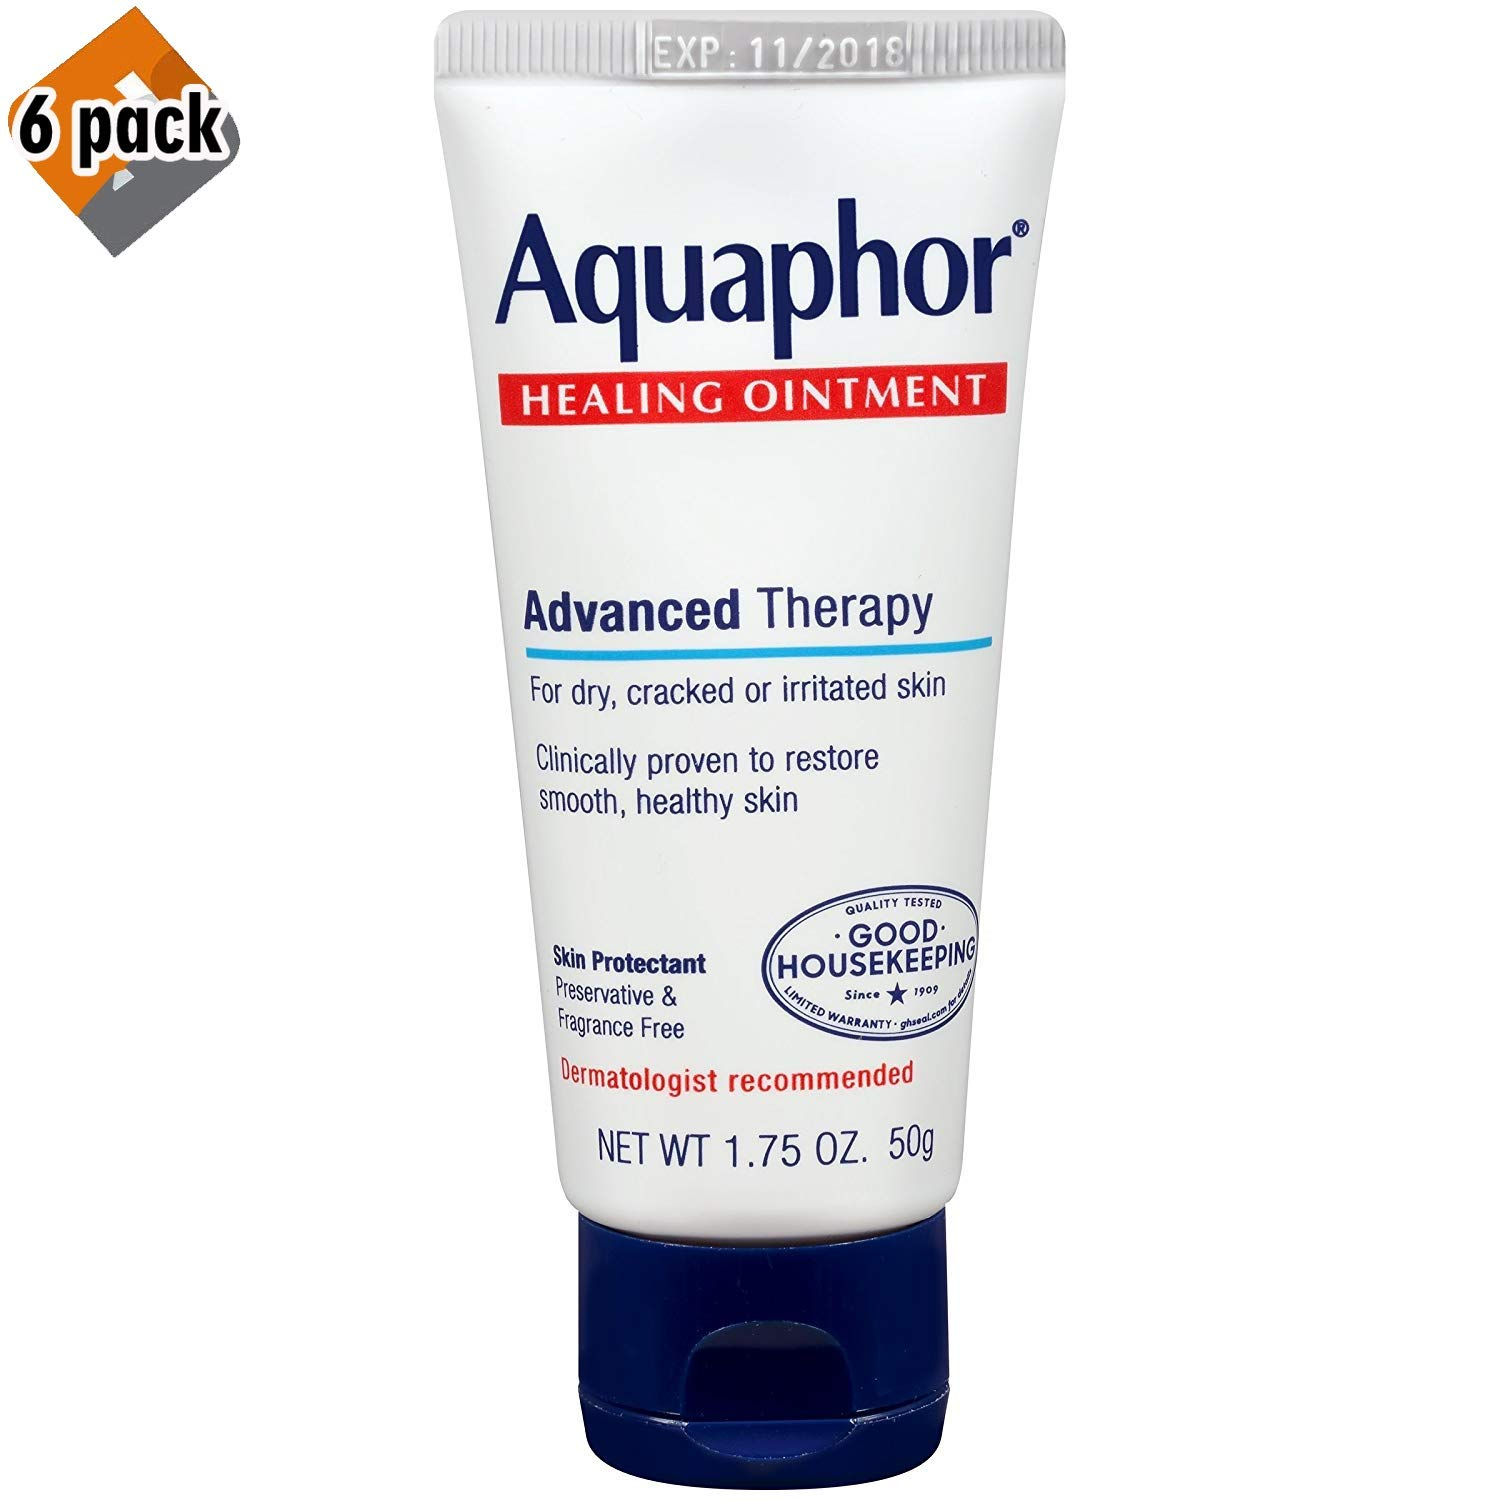 Aquaphor Advanced Therapy Healing Ointment Skin Protectant, 1.75 Ounce (Pack of 6)